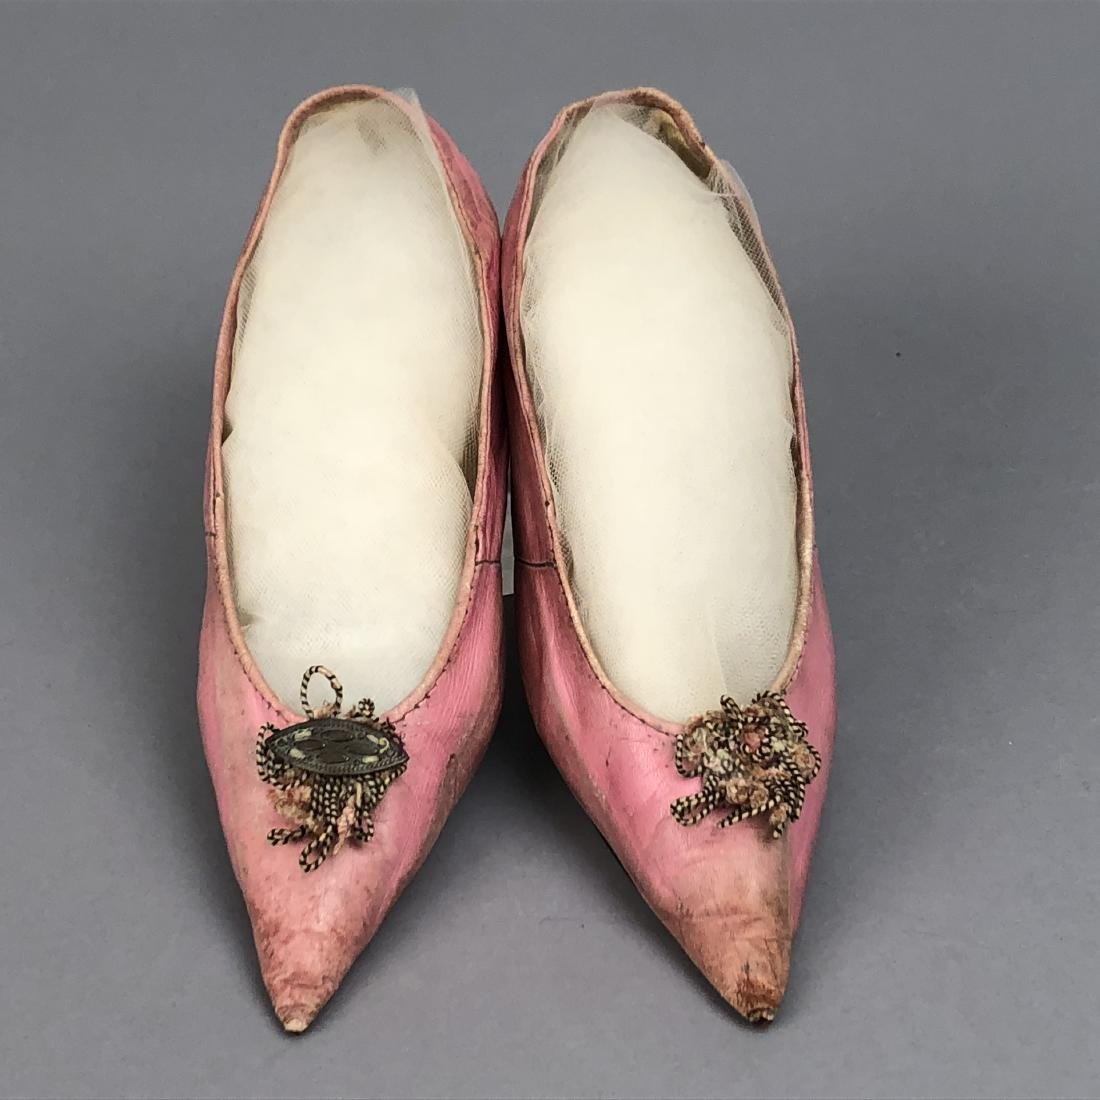 PINK KID SHOES with CORD DECORATION, LATE 1790s